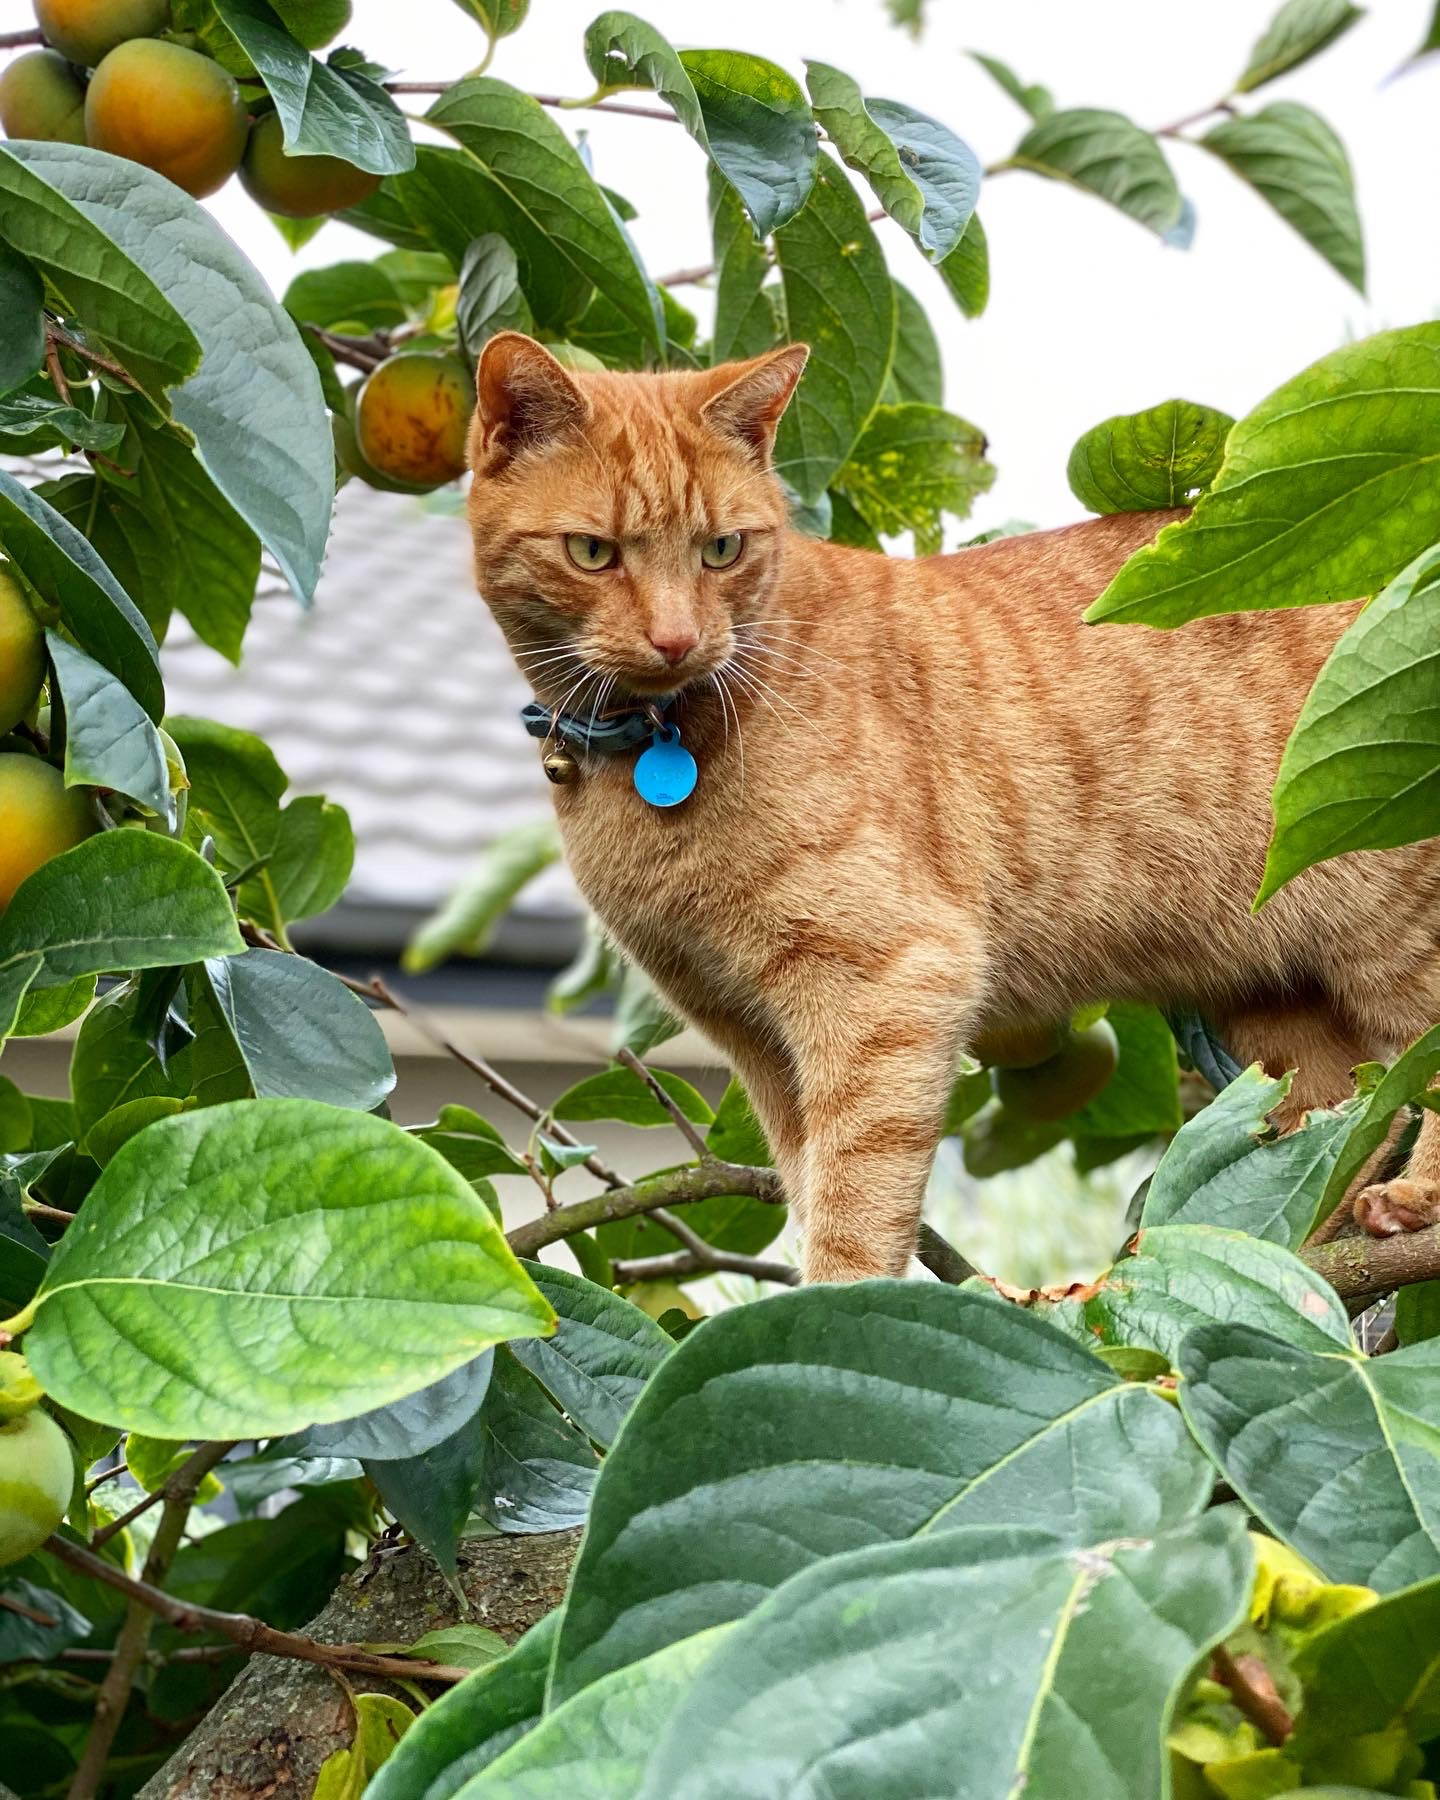 Jack the ginger cat stands on a branch in the persimmon tree with ripe fruit around him